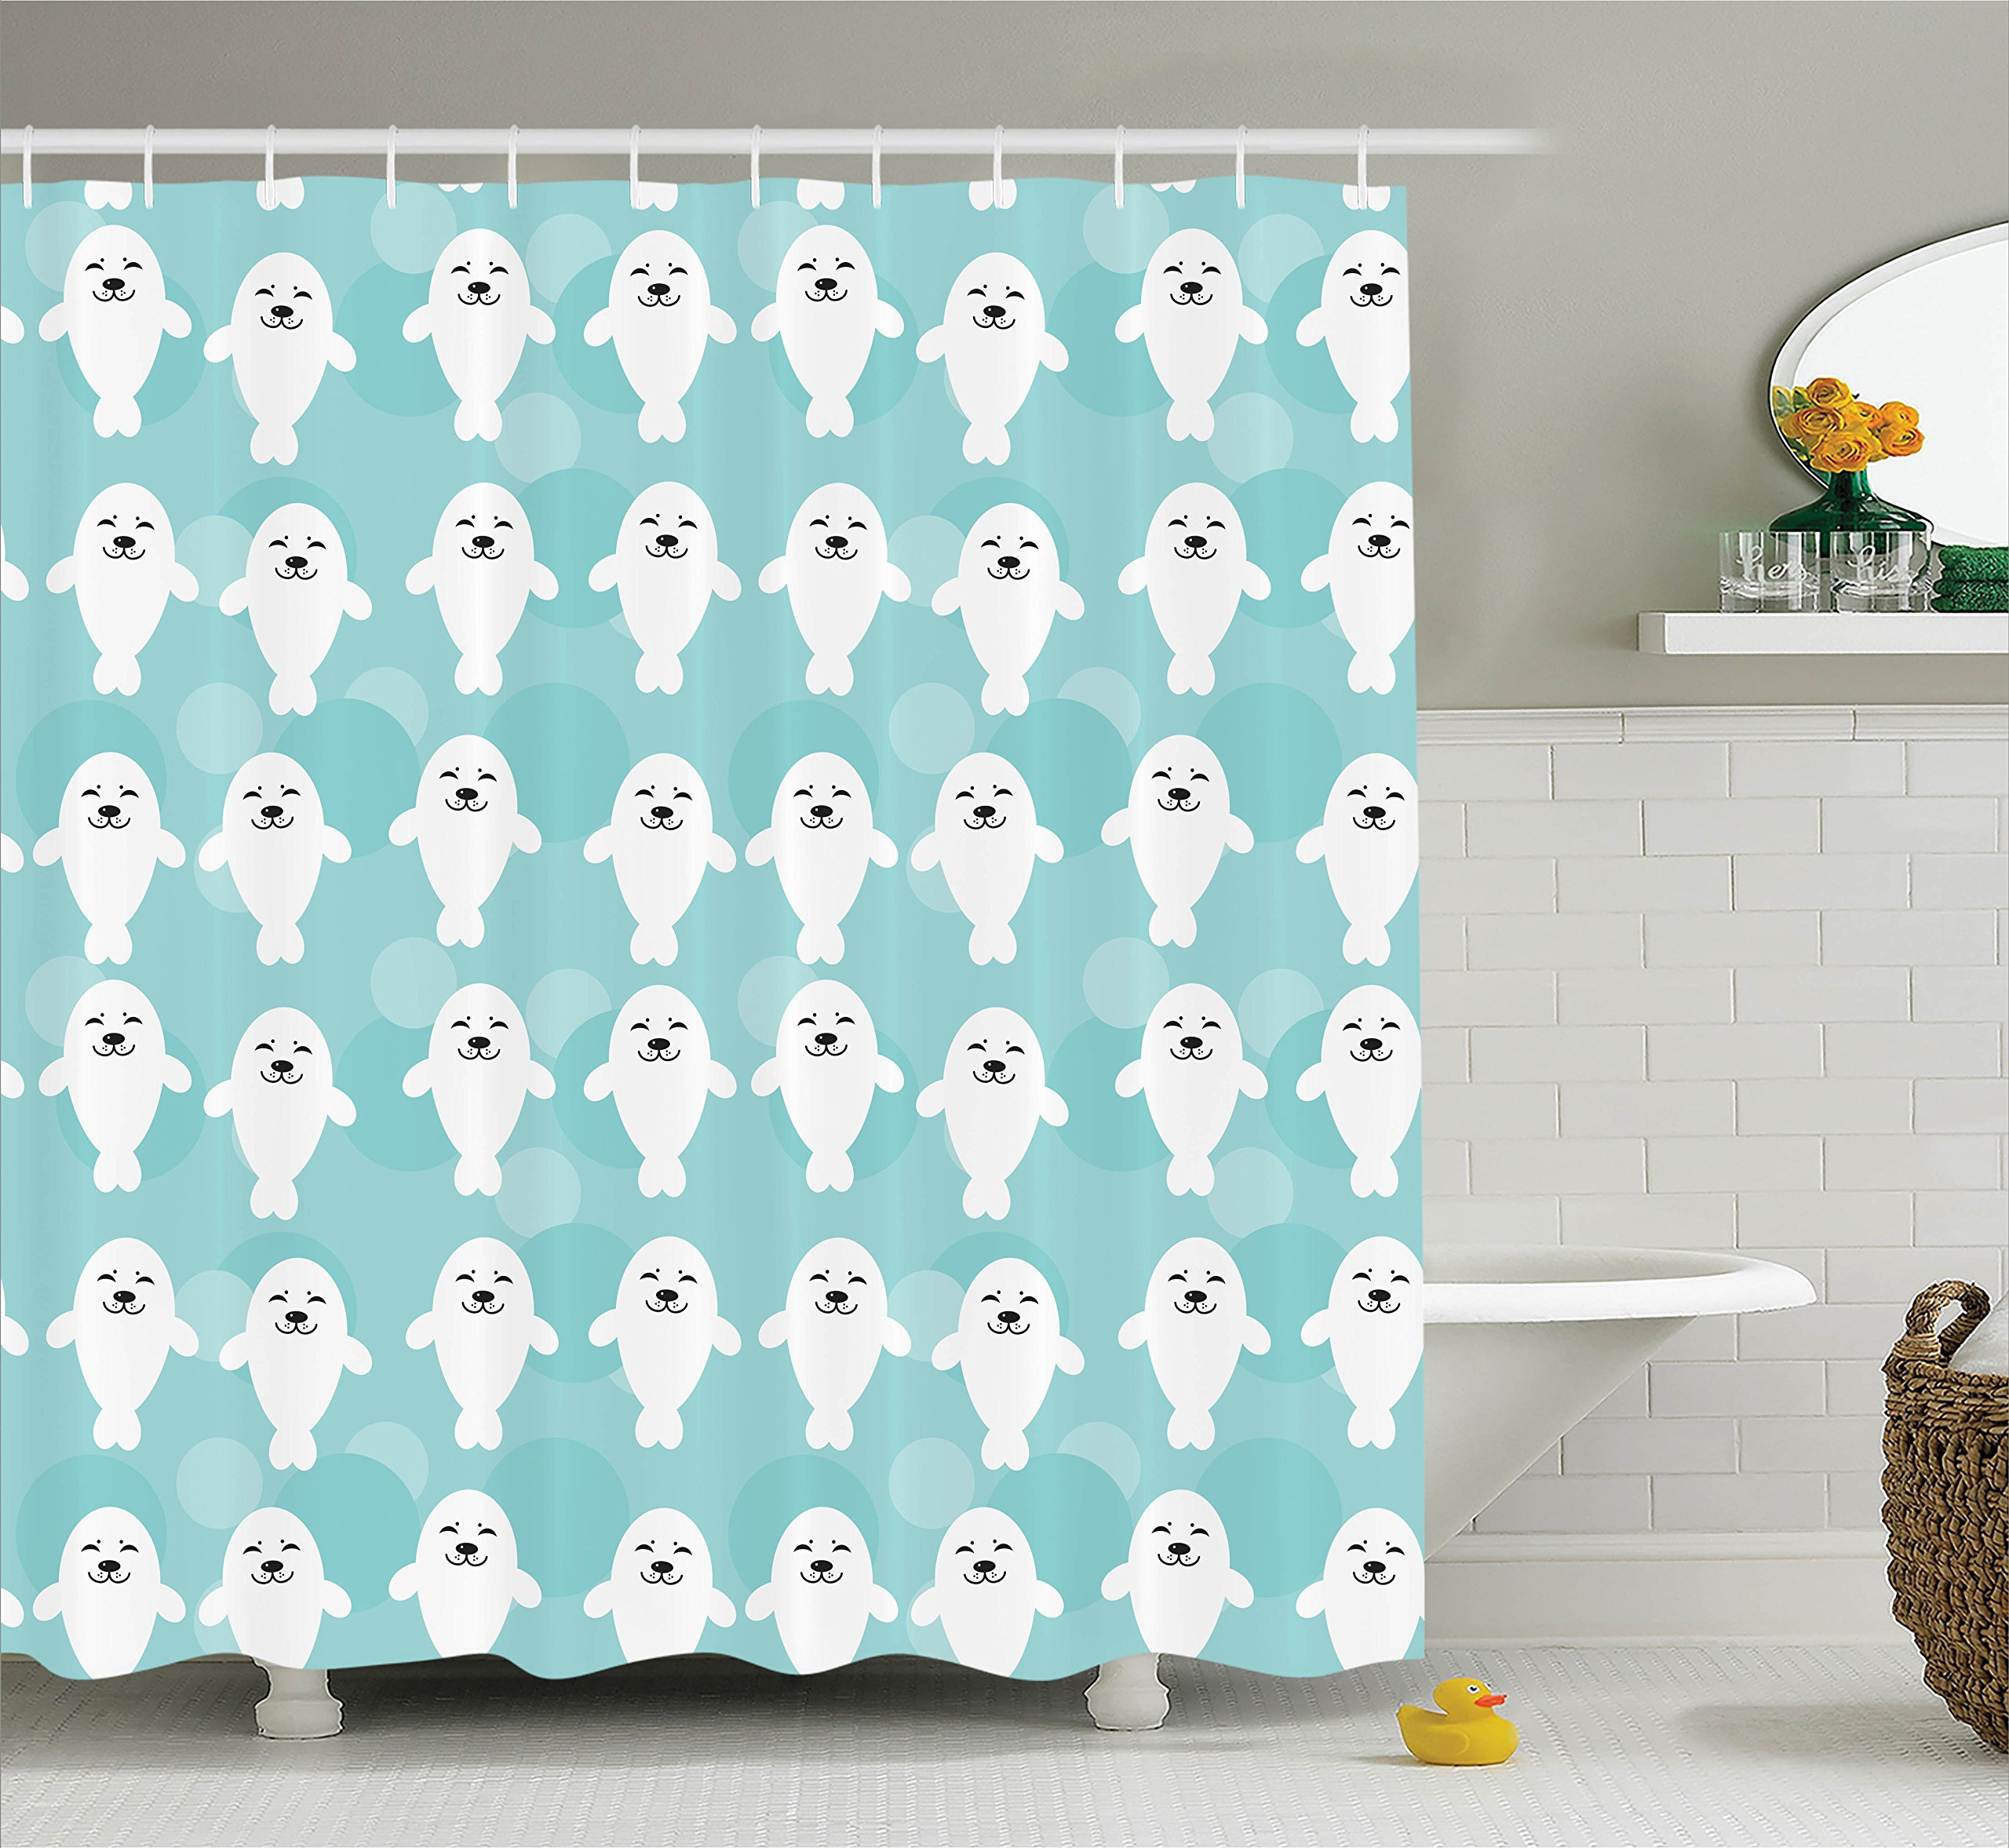 Ambesonne Sea Animals Decor Shower Curtain Set, White Baby Seals with Cute Faces Children Baby Smiling Cheerful Kids, Bathroom Accessories, 69W X 70L inches